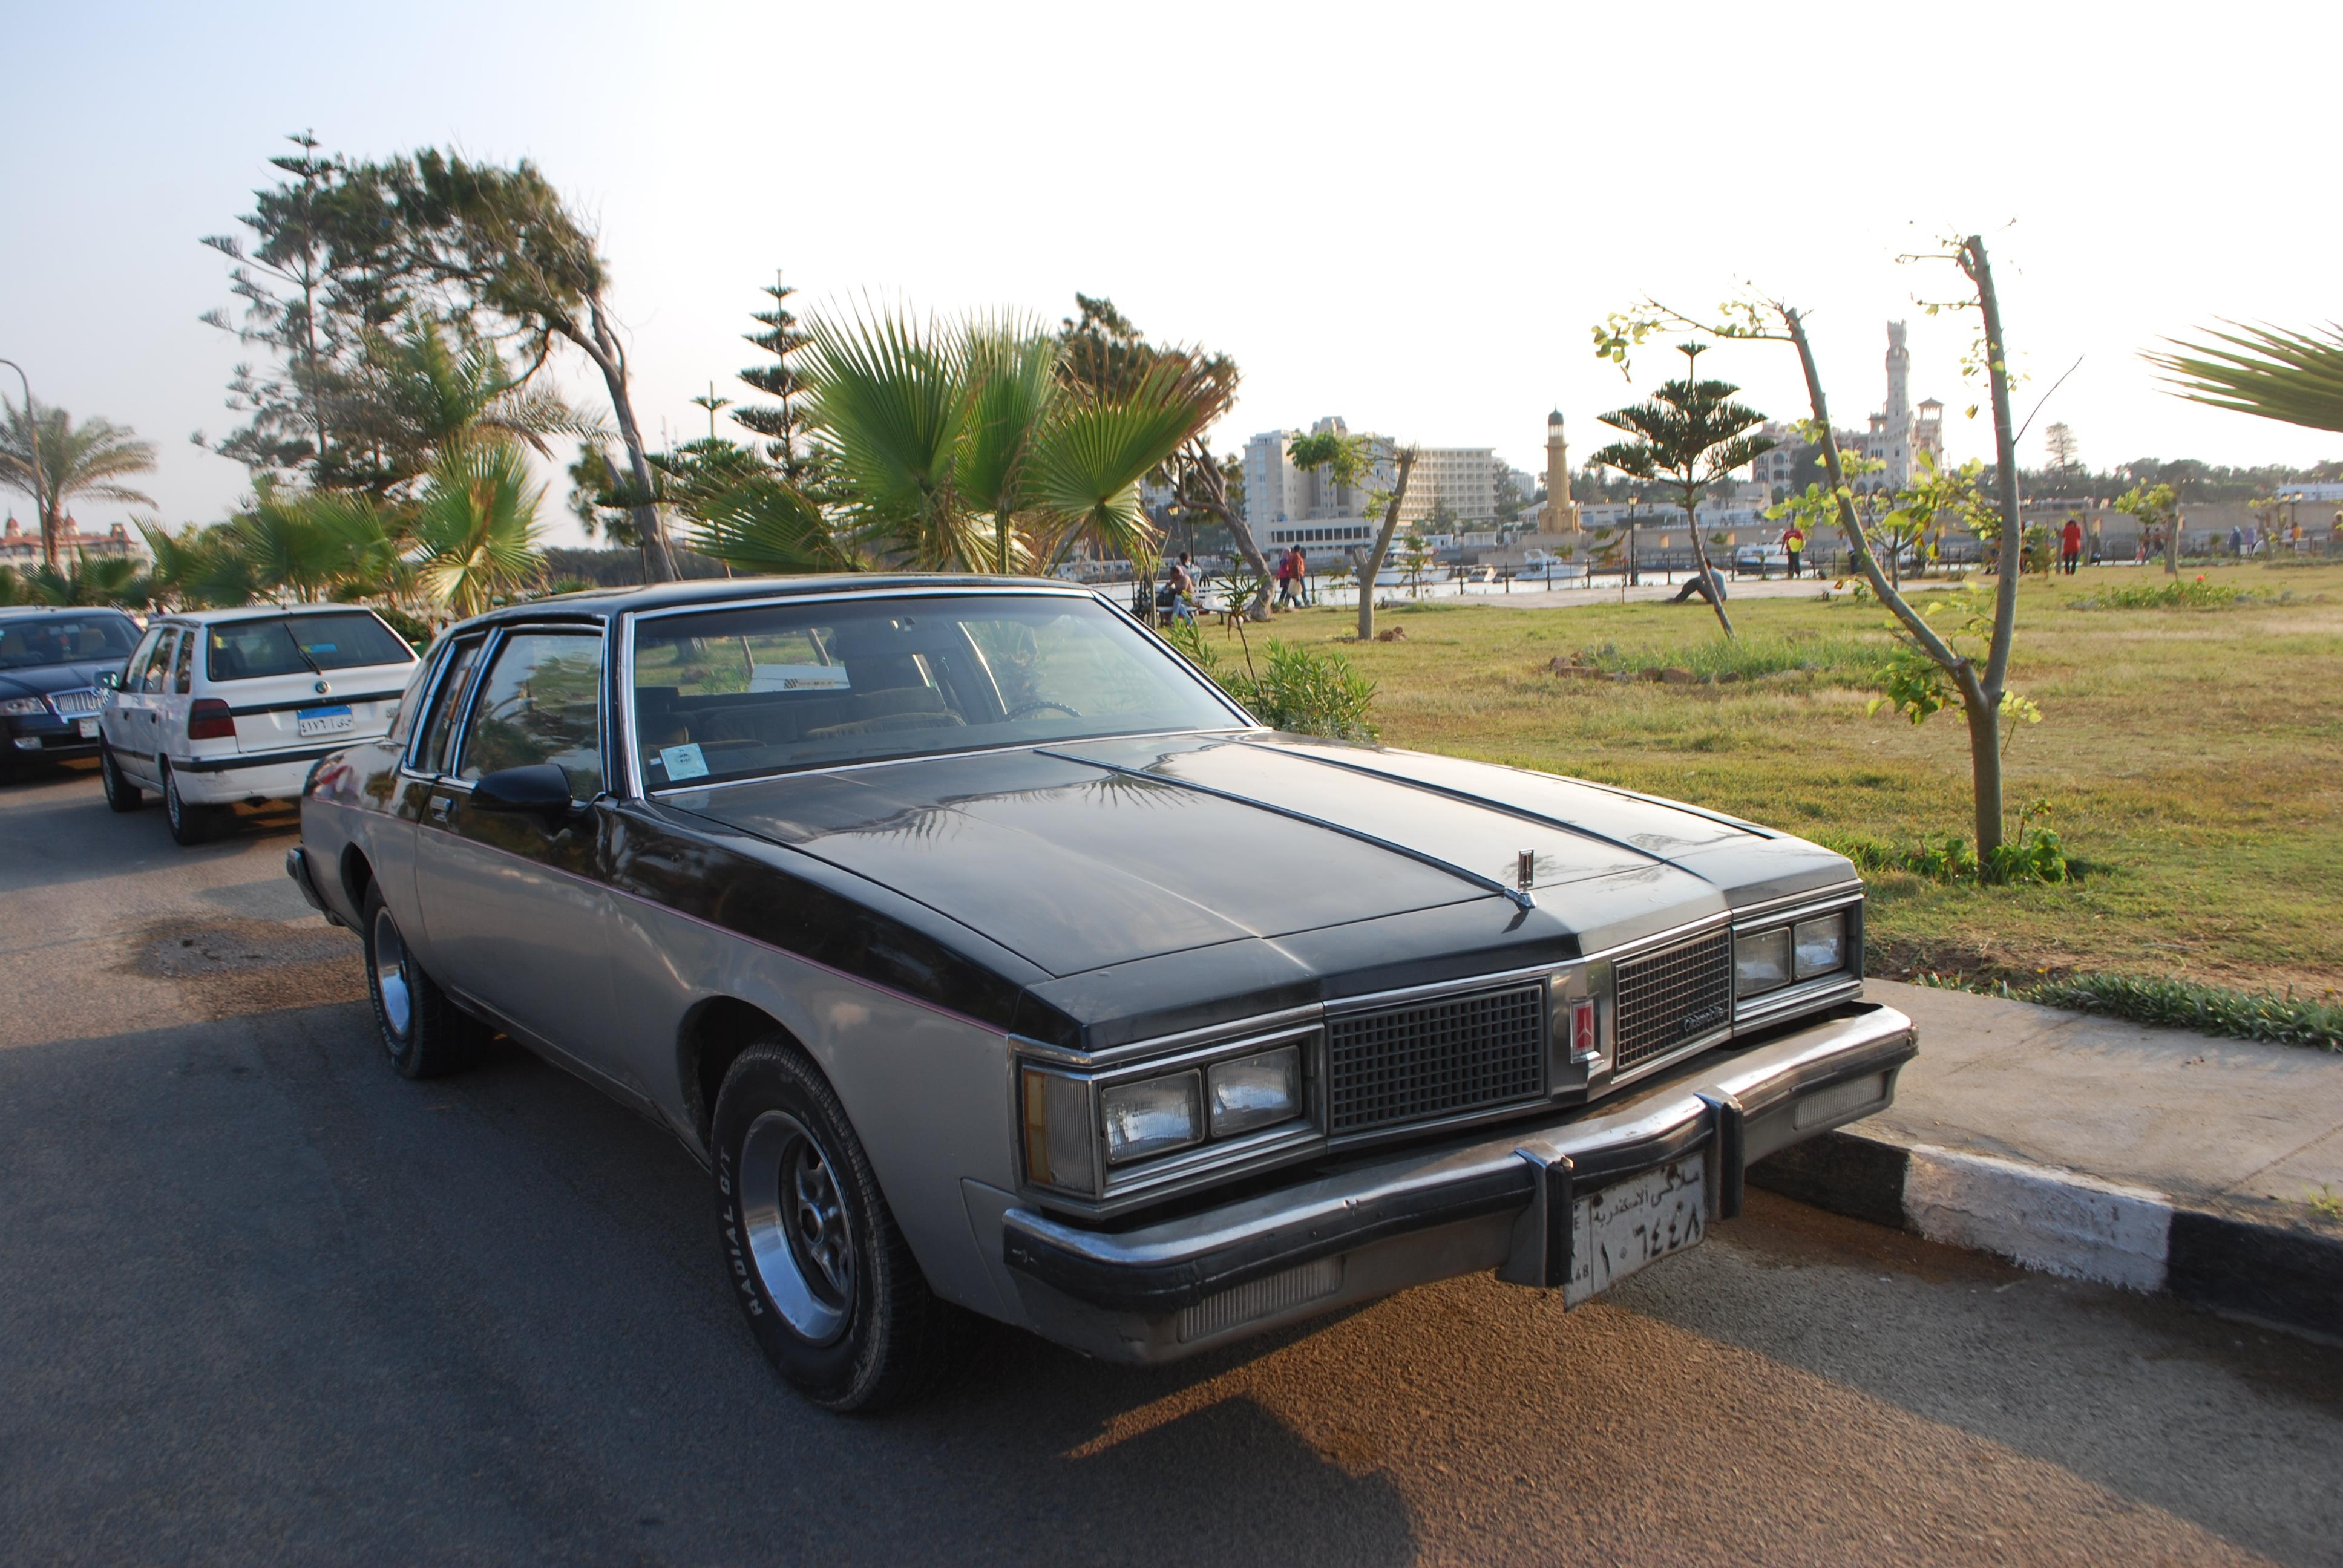 1980 Oldsmobile Delta 88 - Information and photos - MOMENTcar1980 Oldsmobile Delta 88 Photos